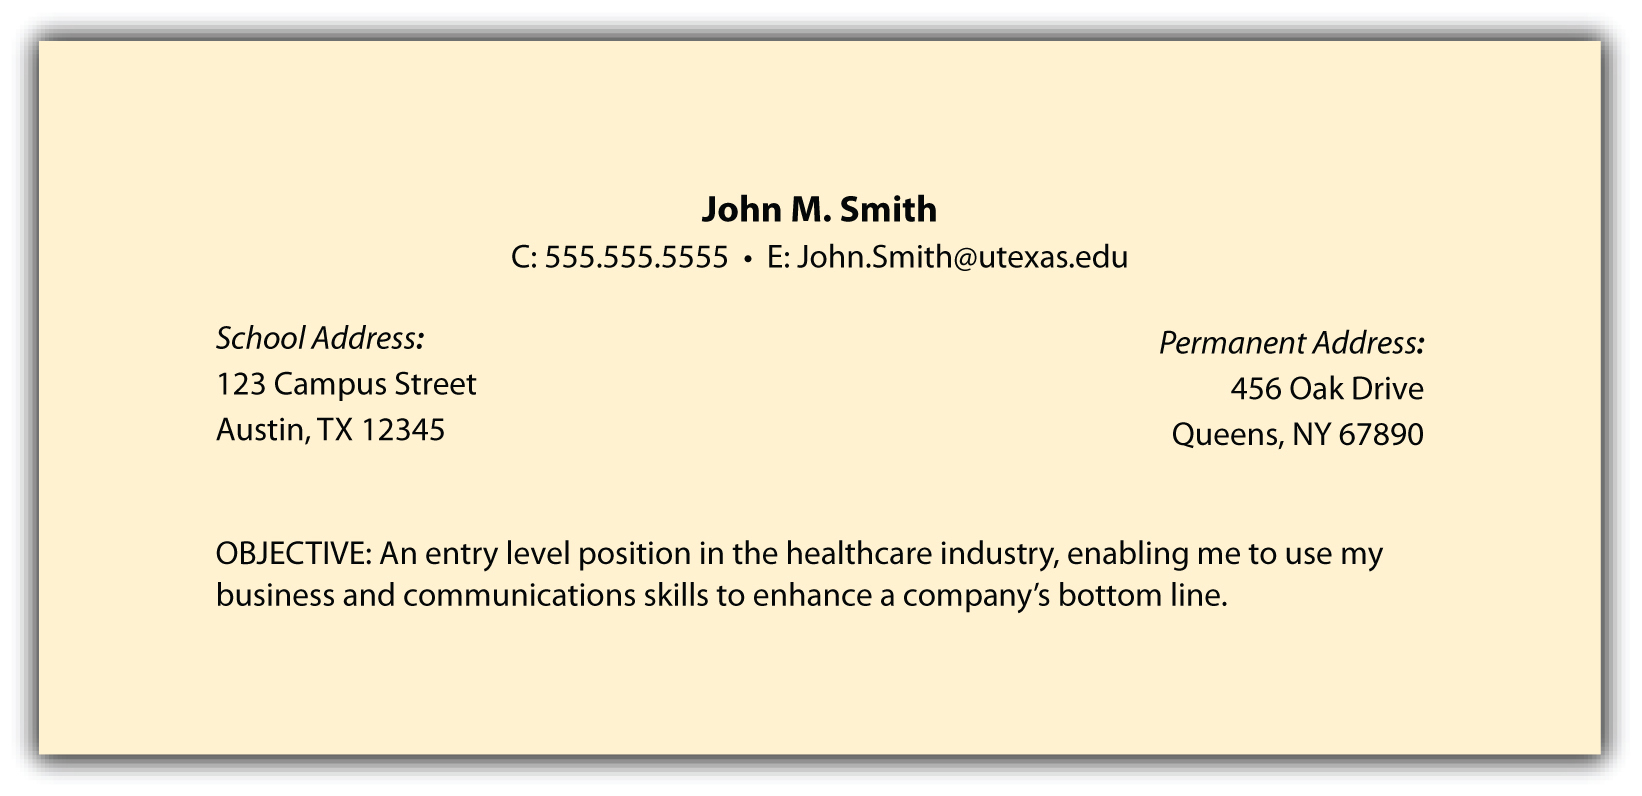 resume objective section